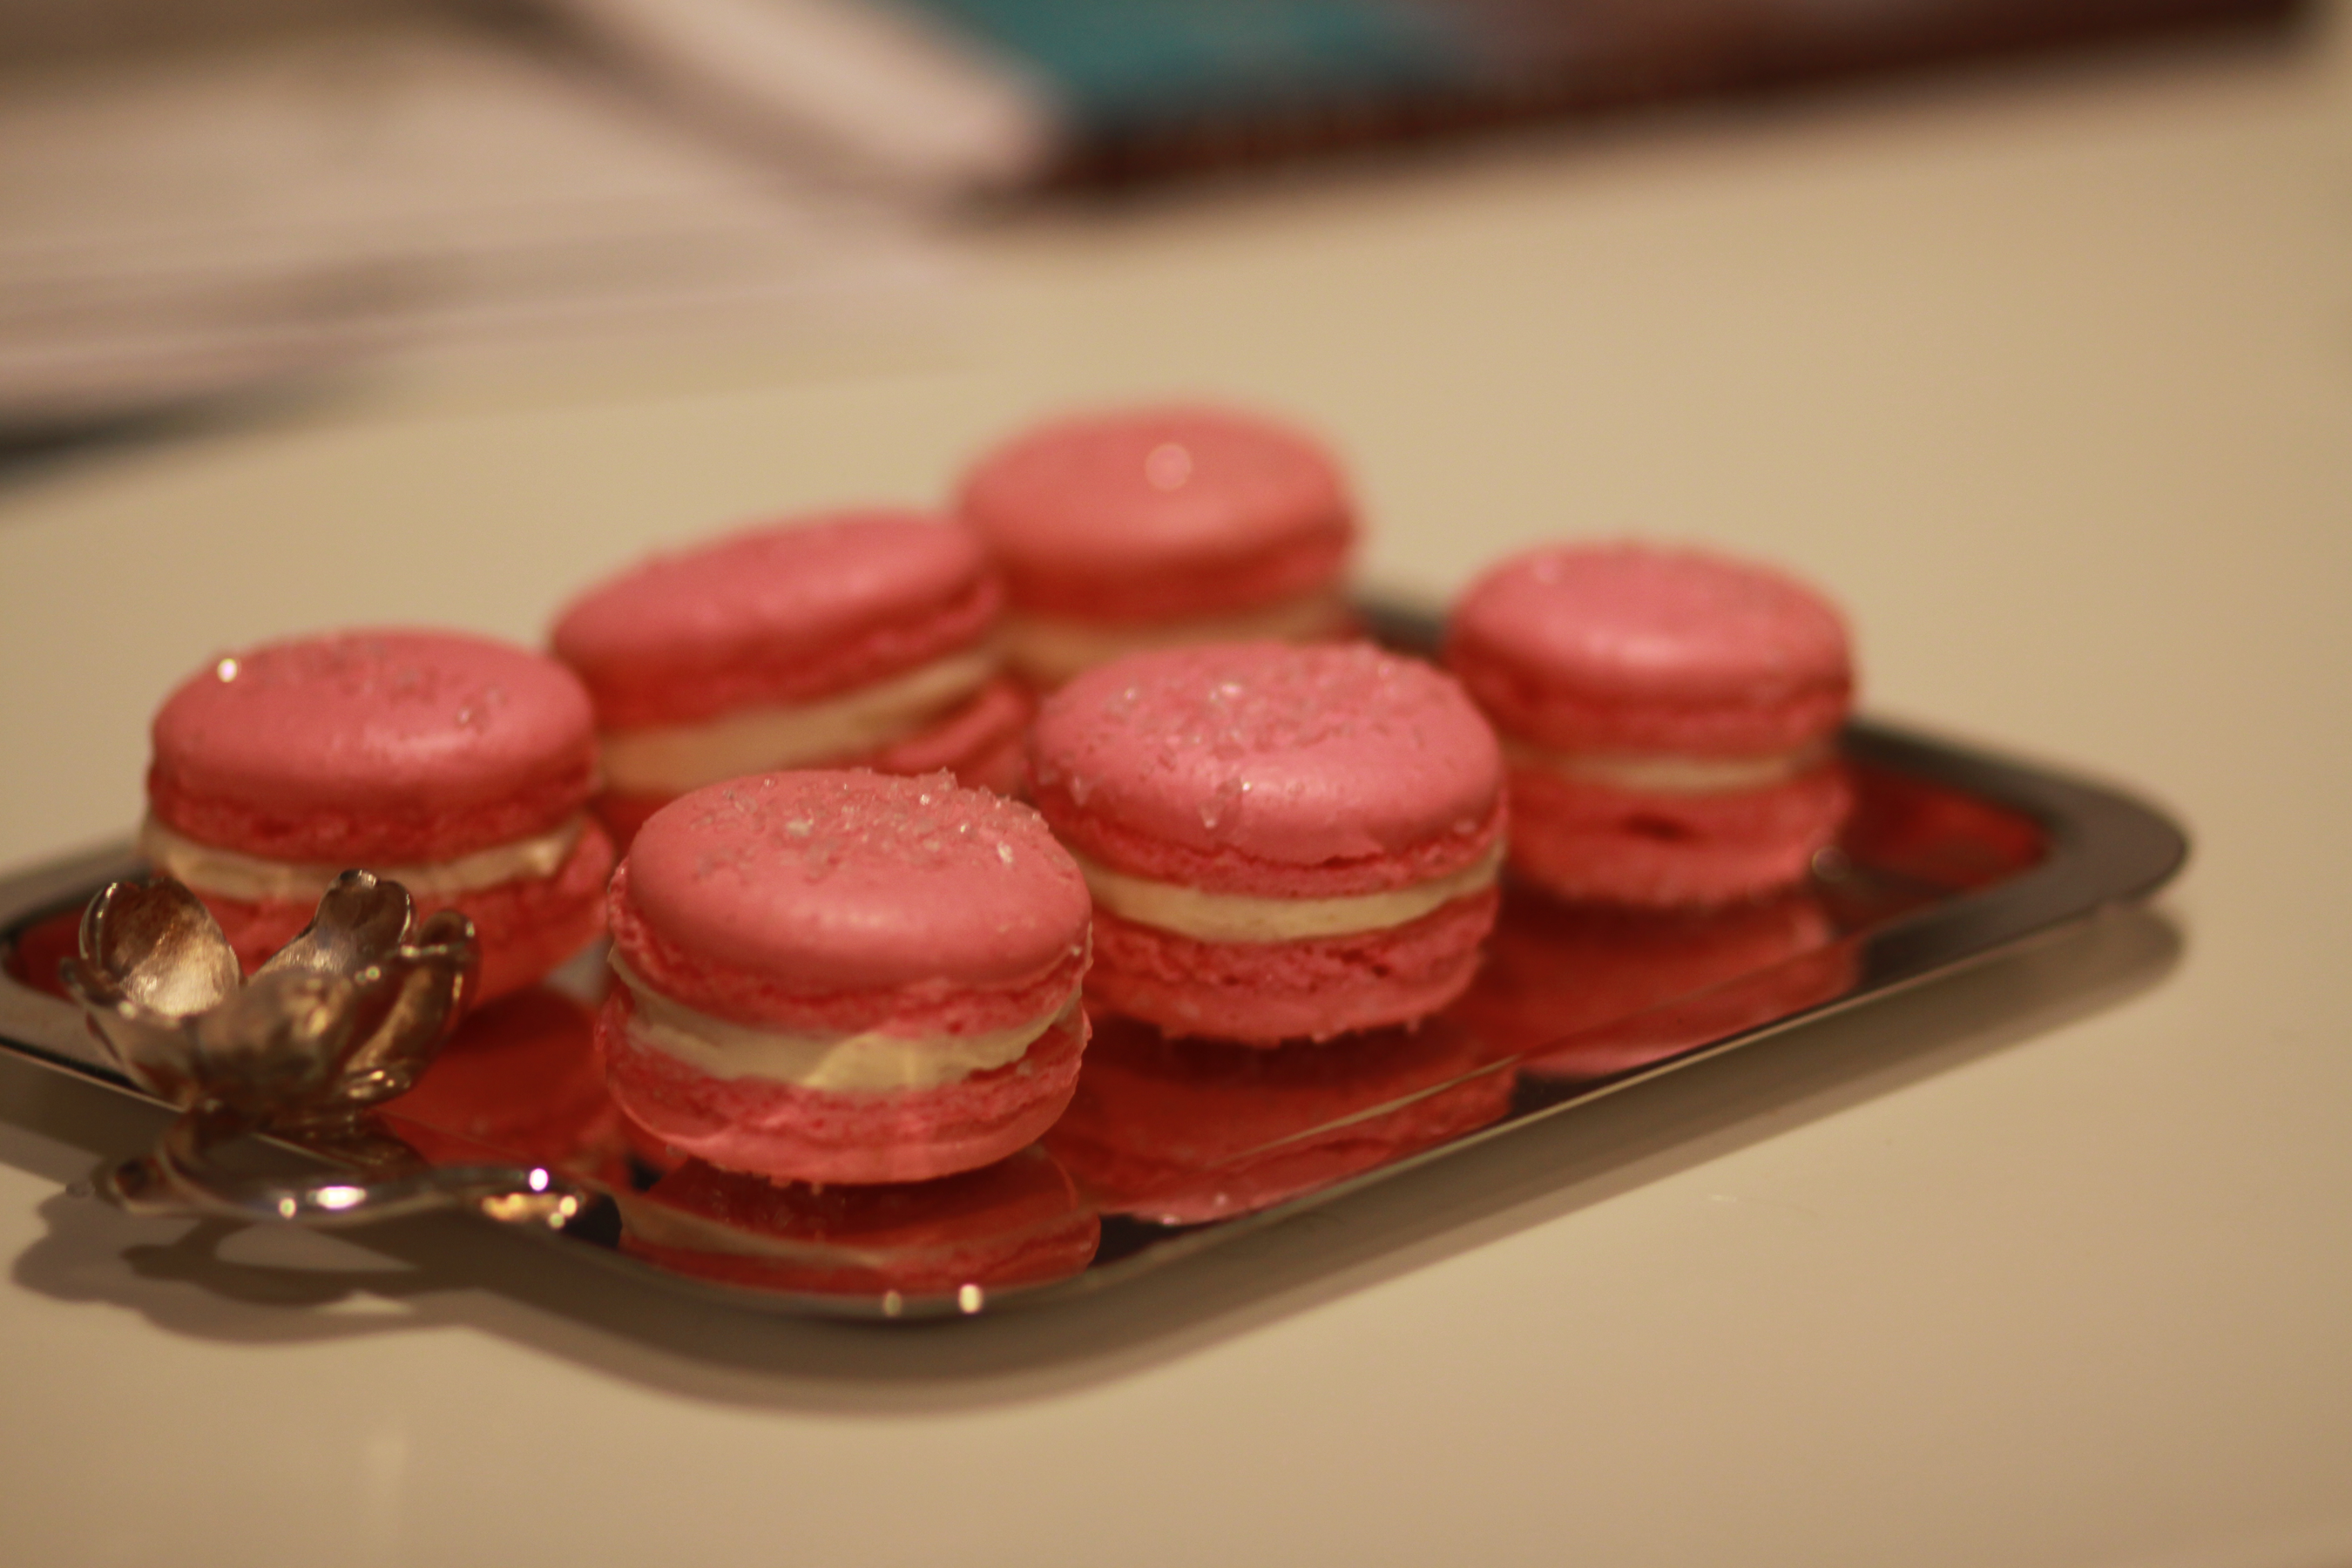 Pierre Herme French Macarons